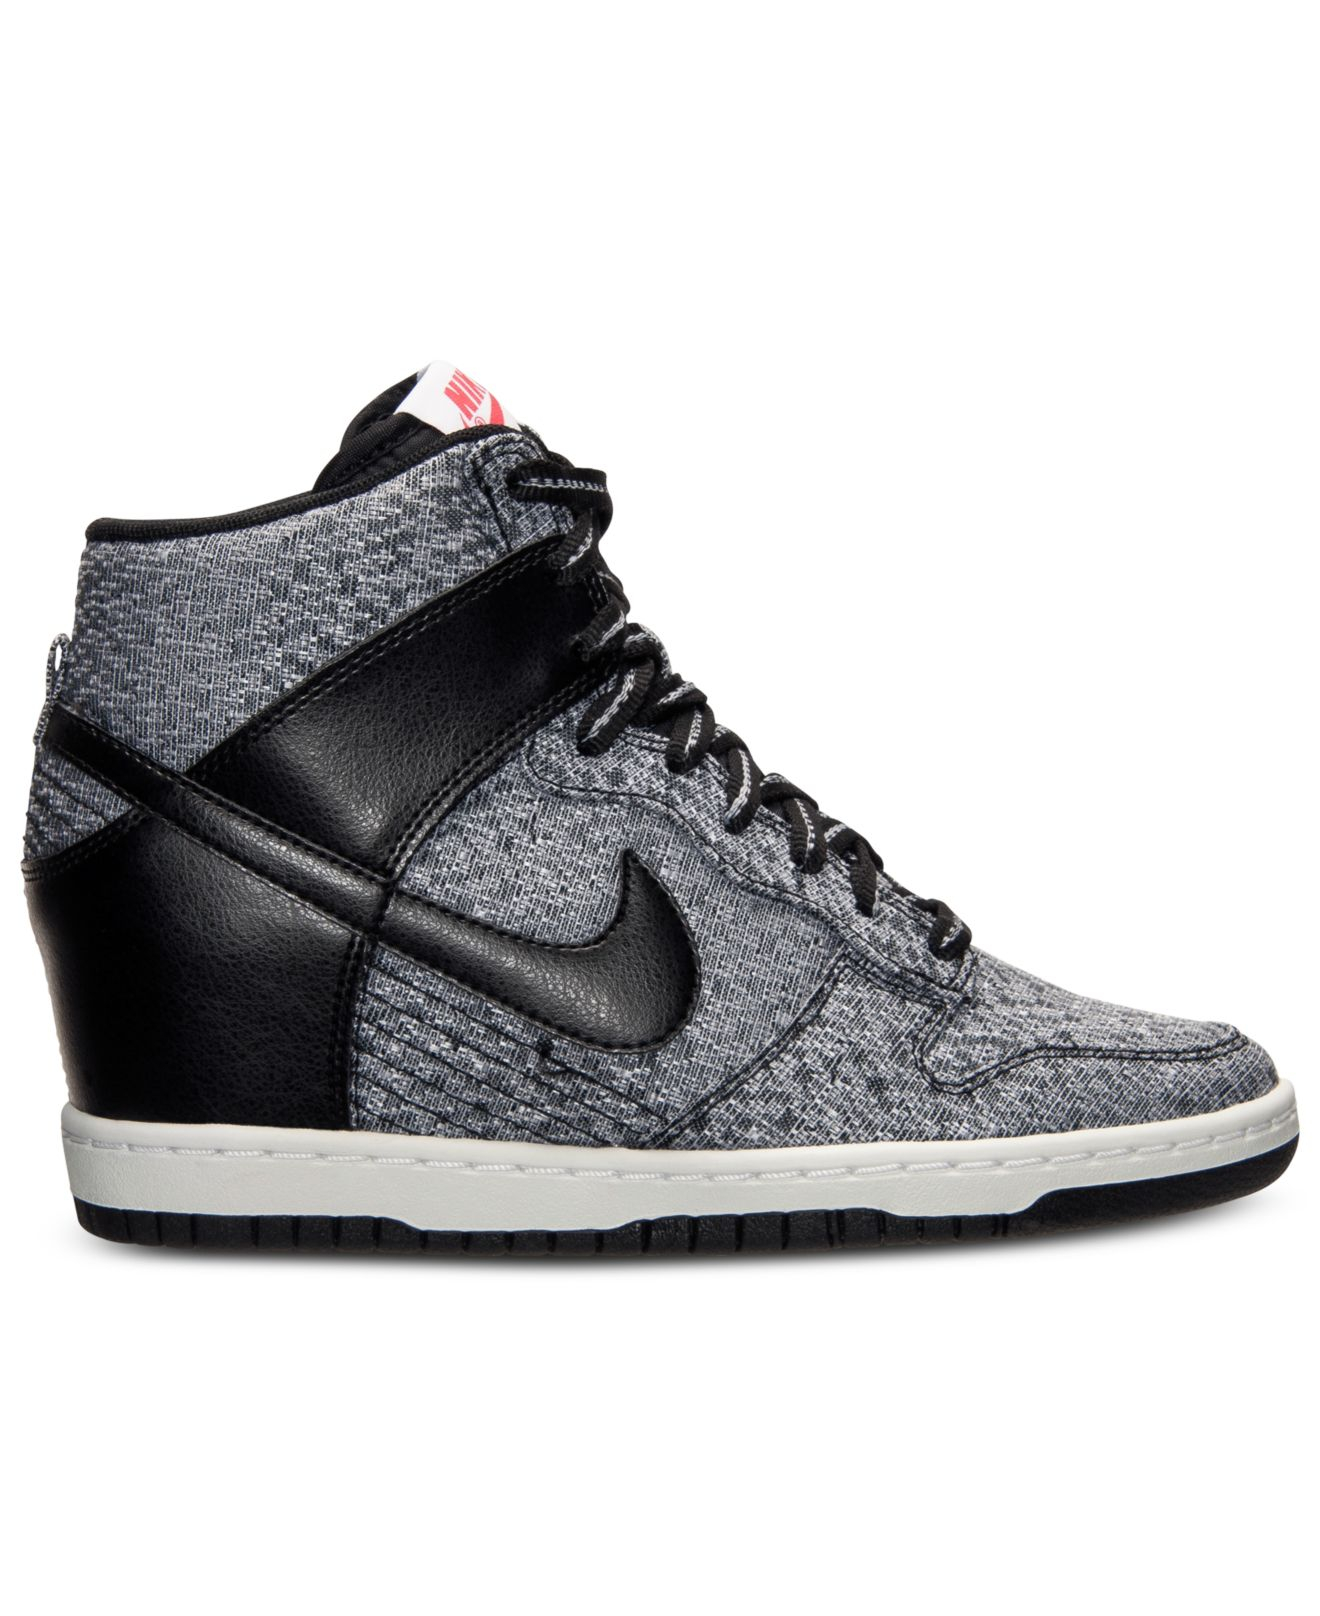 low priced 0eb92 c2e65 Gallery. Previously sold at  Macy s · Women s Nike Dunk Women s Nike Dunk  Sky Hi Women s Glitter Sneakers ...